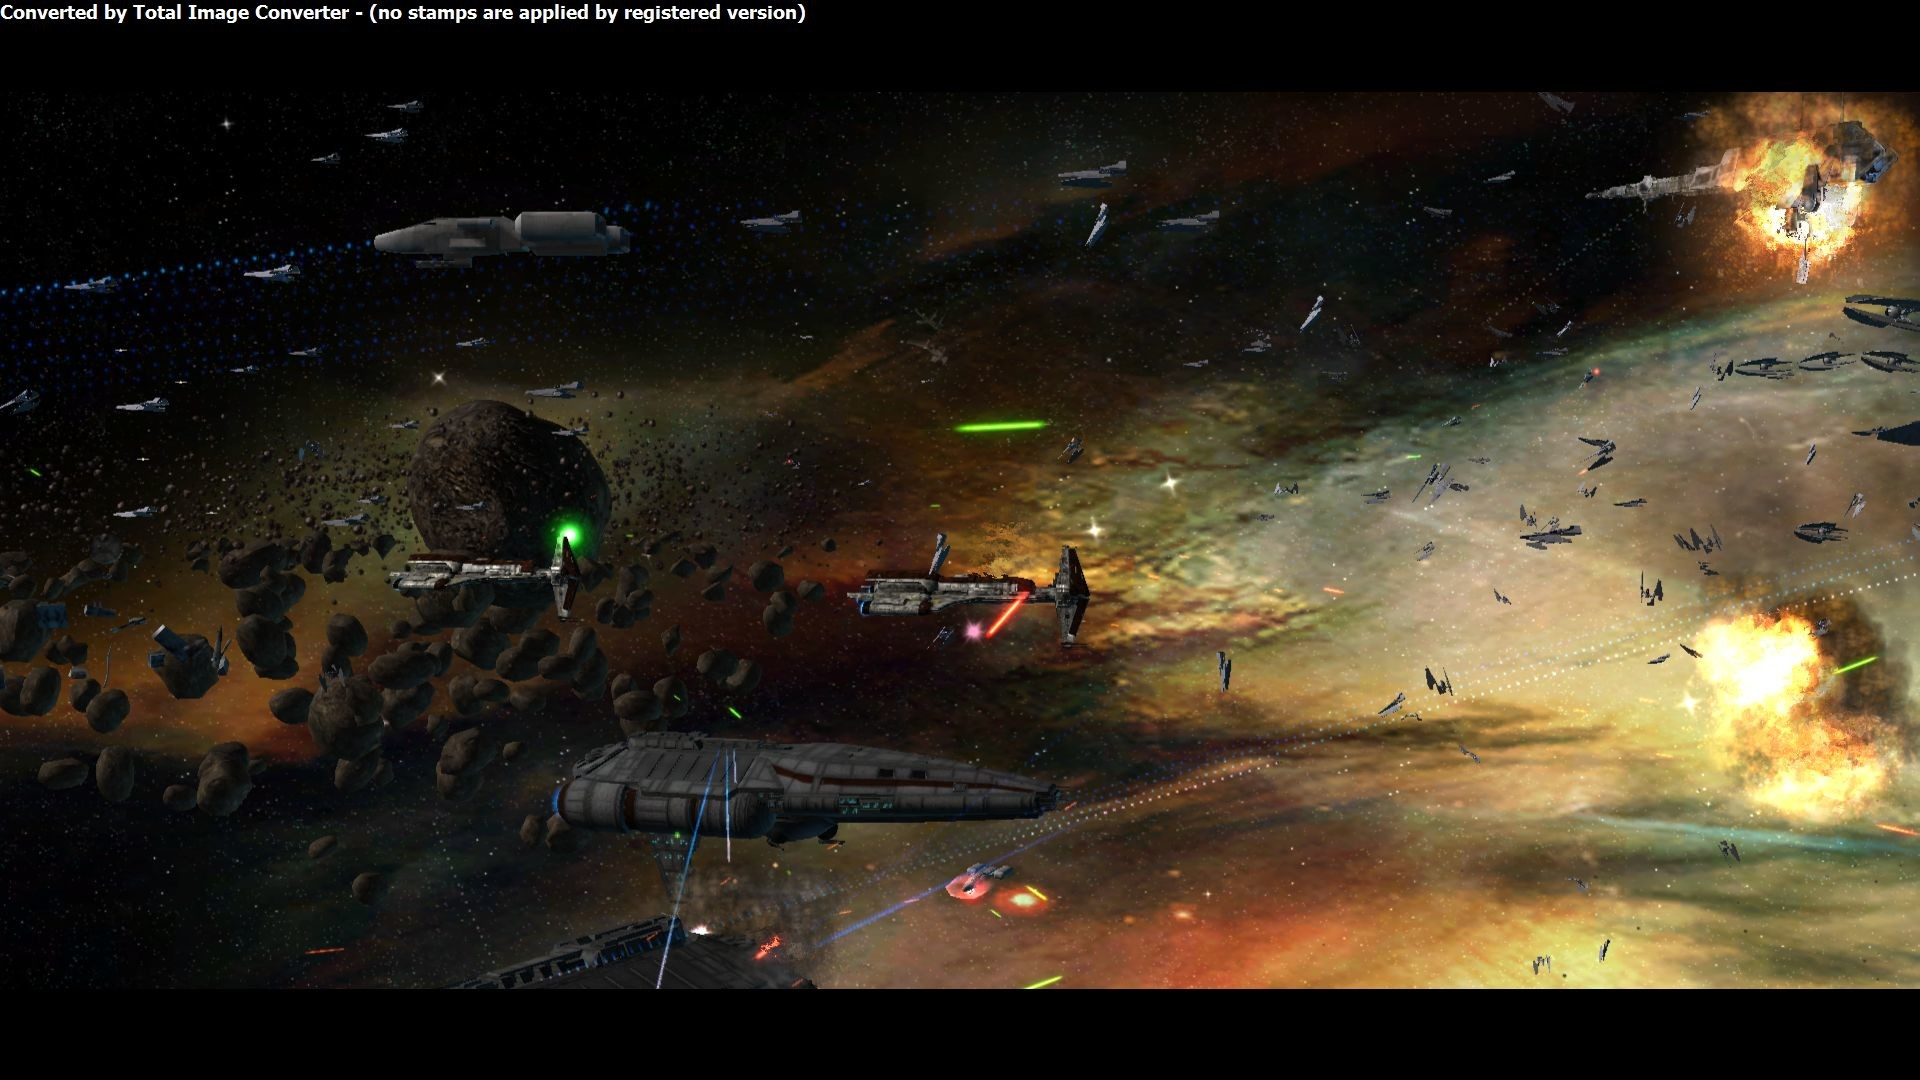 The most epic battle… image – Old Republic at War mod for Star